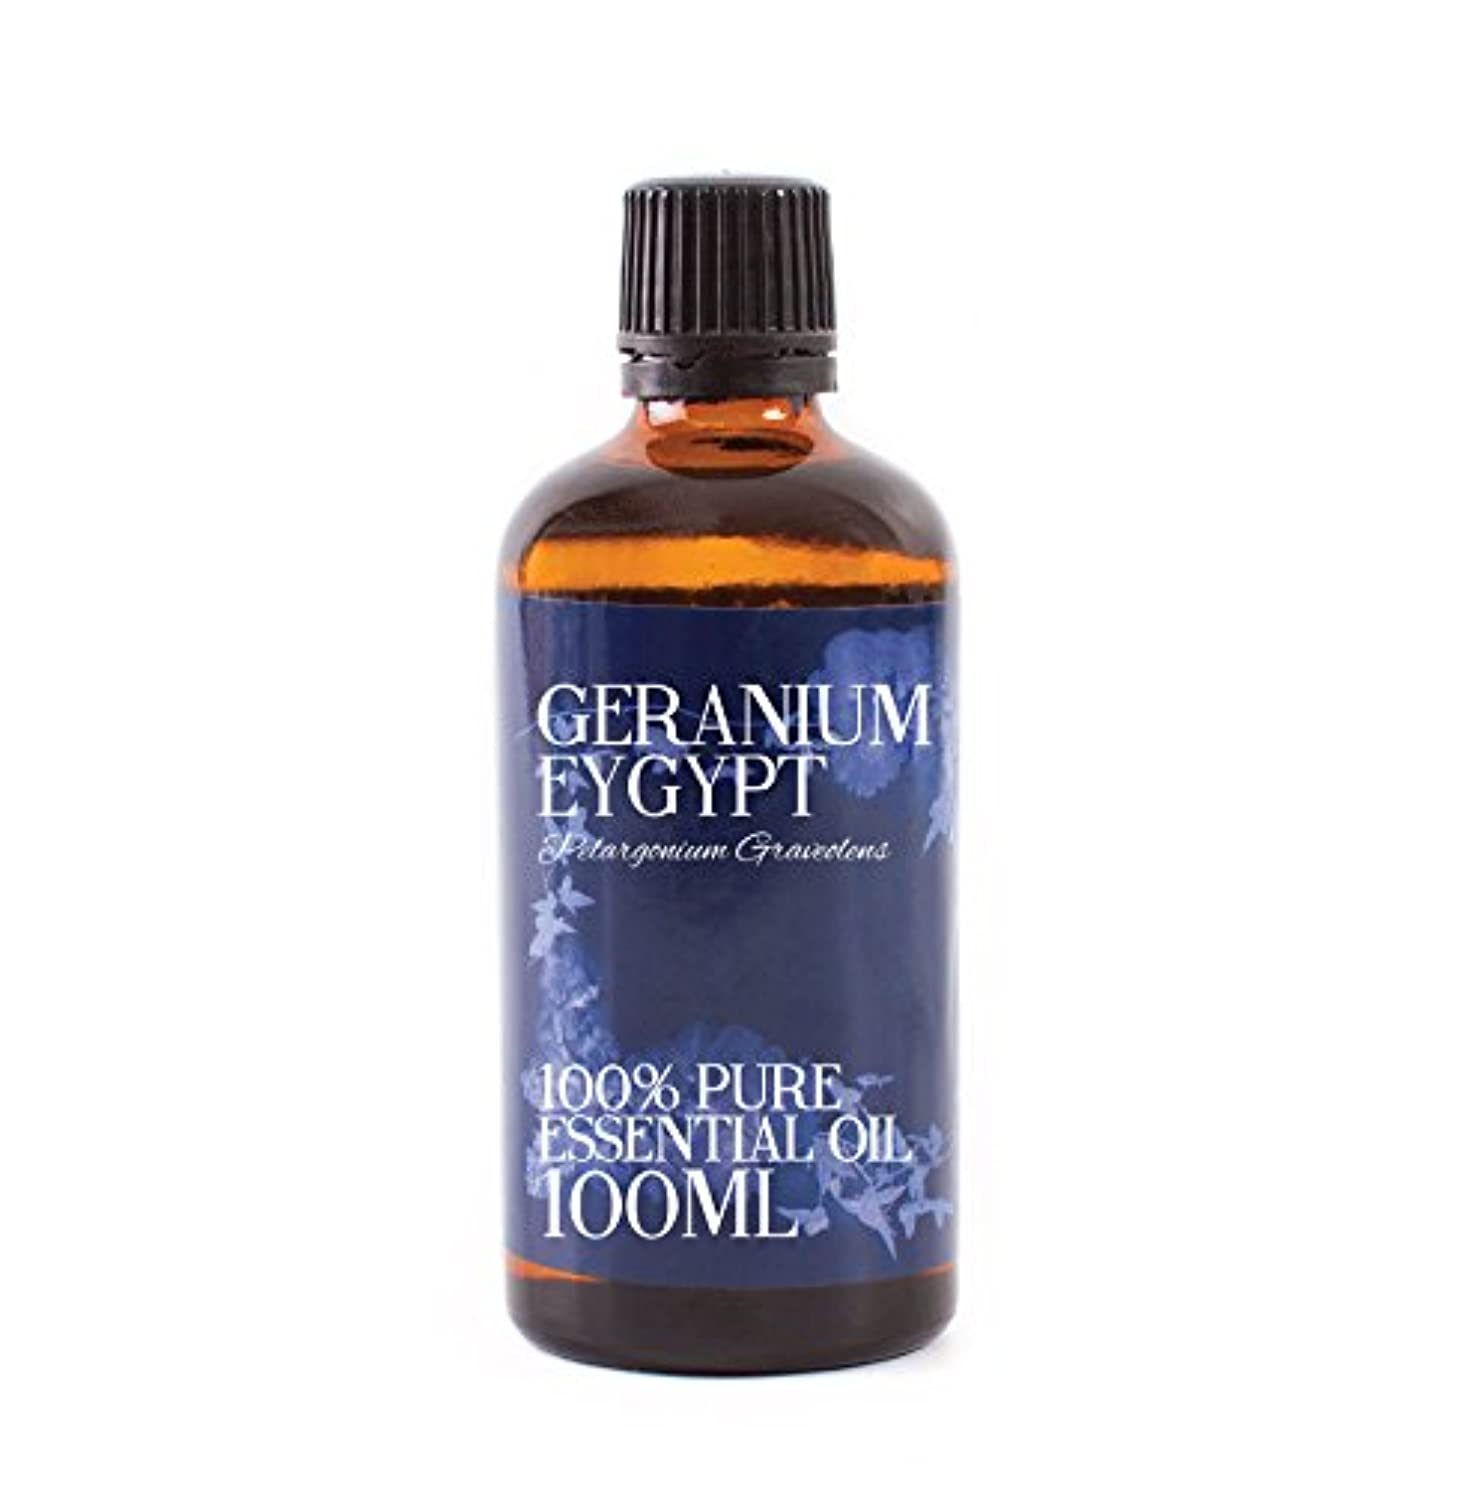 間違い鰐でるMystic Moments | Geranium Egypt Essential Oil - 100ml - 100% Pure